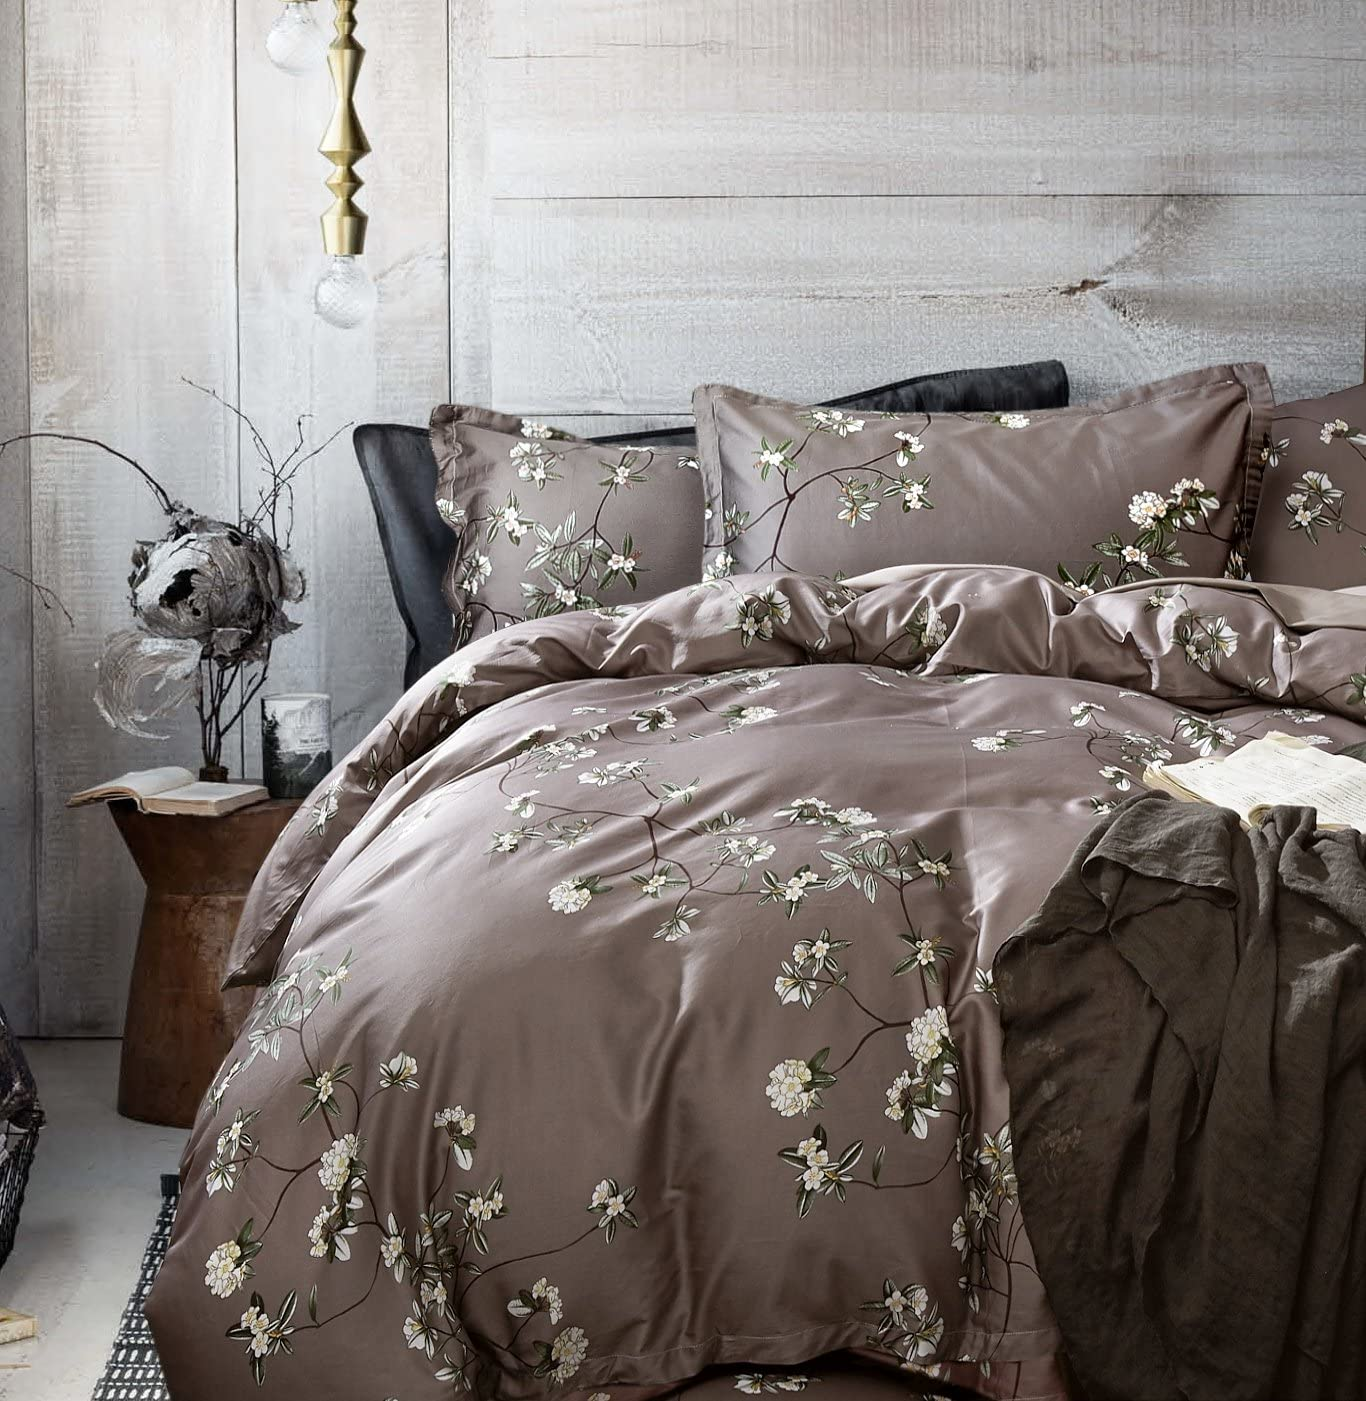 Eikei Home French Country Garden Toile Floral Printed Duvet Quilt Cover Cotton Bedding Set Asian Style Tapestry Pattern Chinoiserie Peony Blossom Tree Branches Multicolored Design (Queen, Grey Fog)